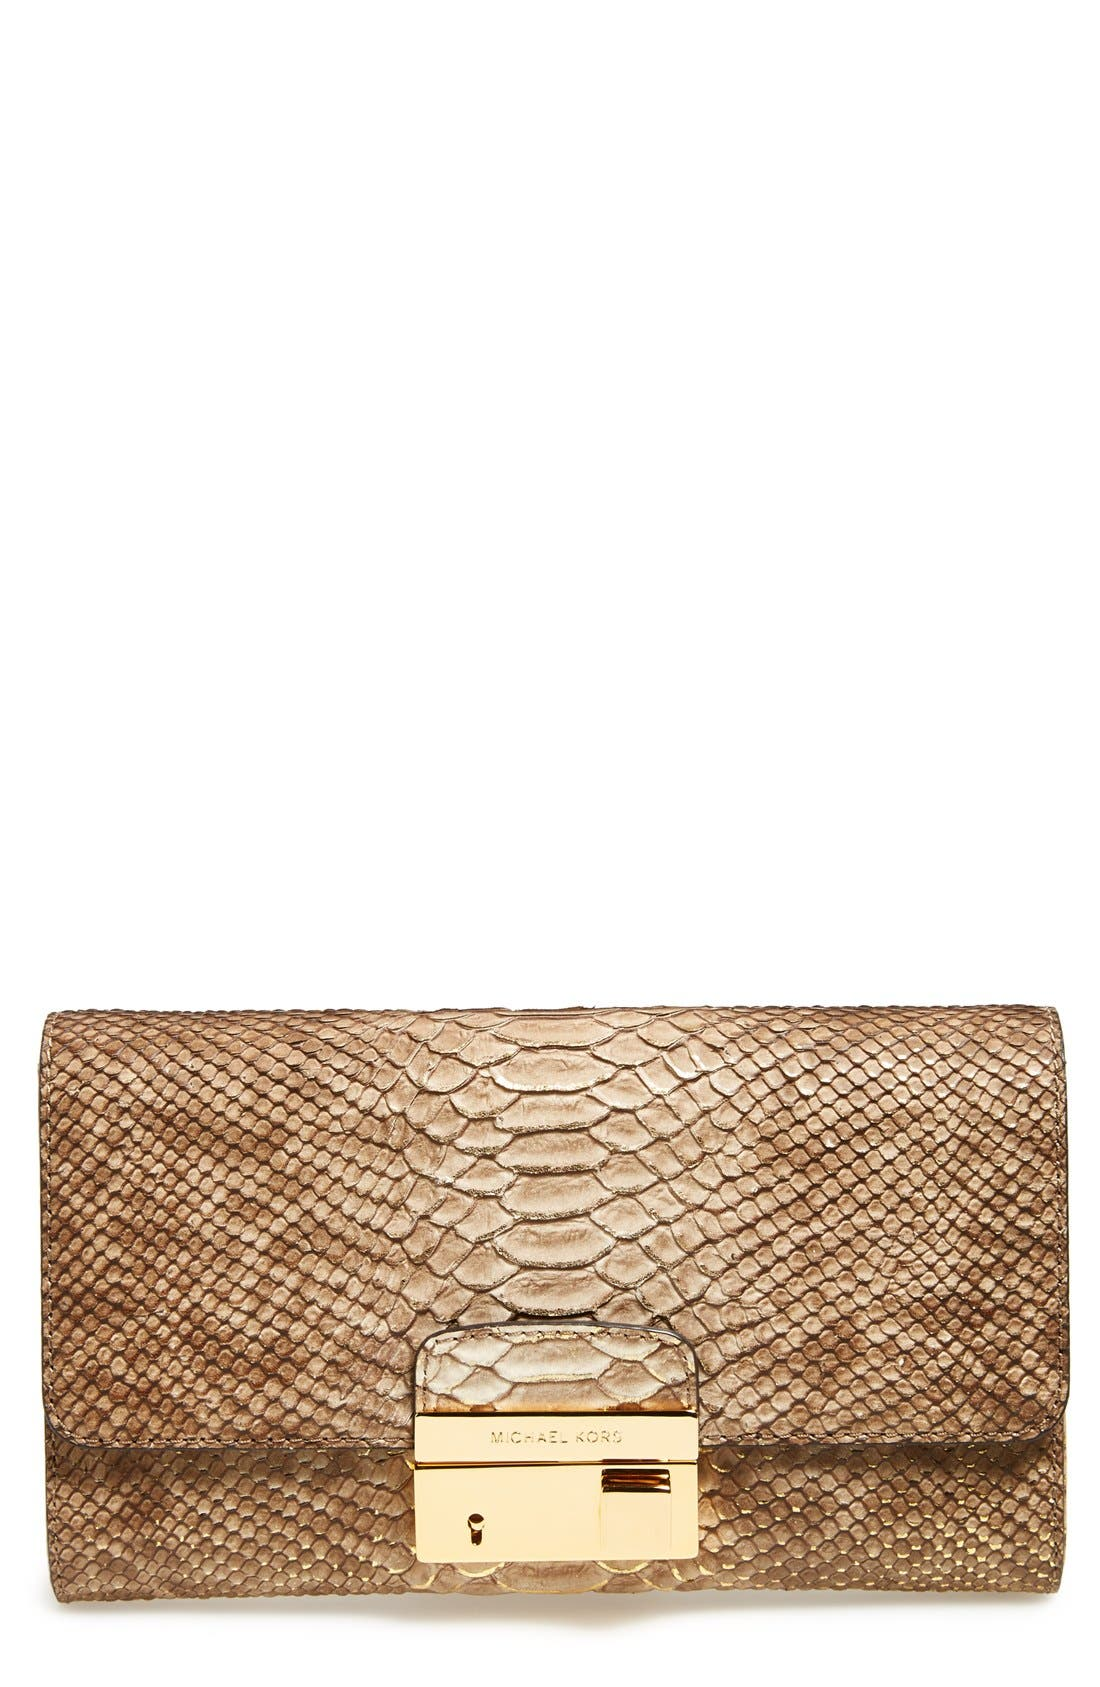 Alternate Image 1 Selected - Michael Kors 'Gia' Python Embossed Clutch